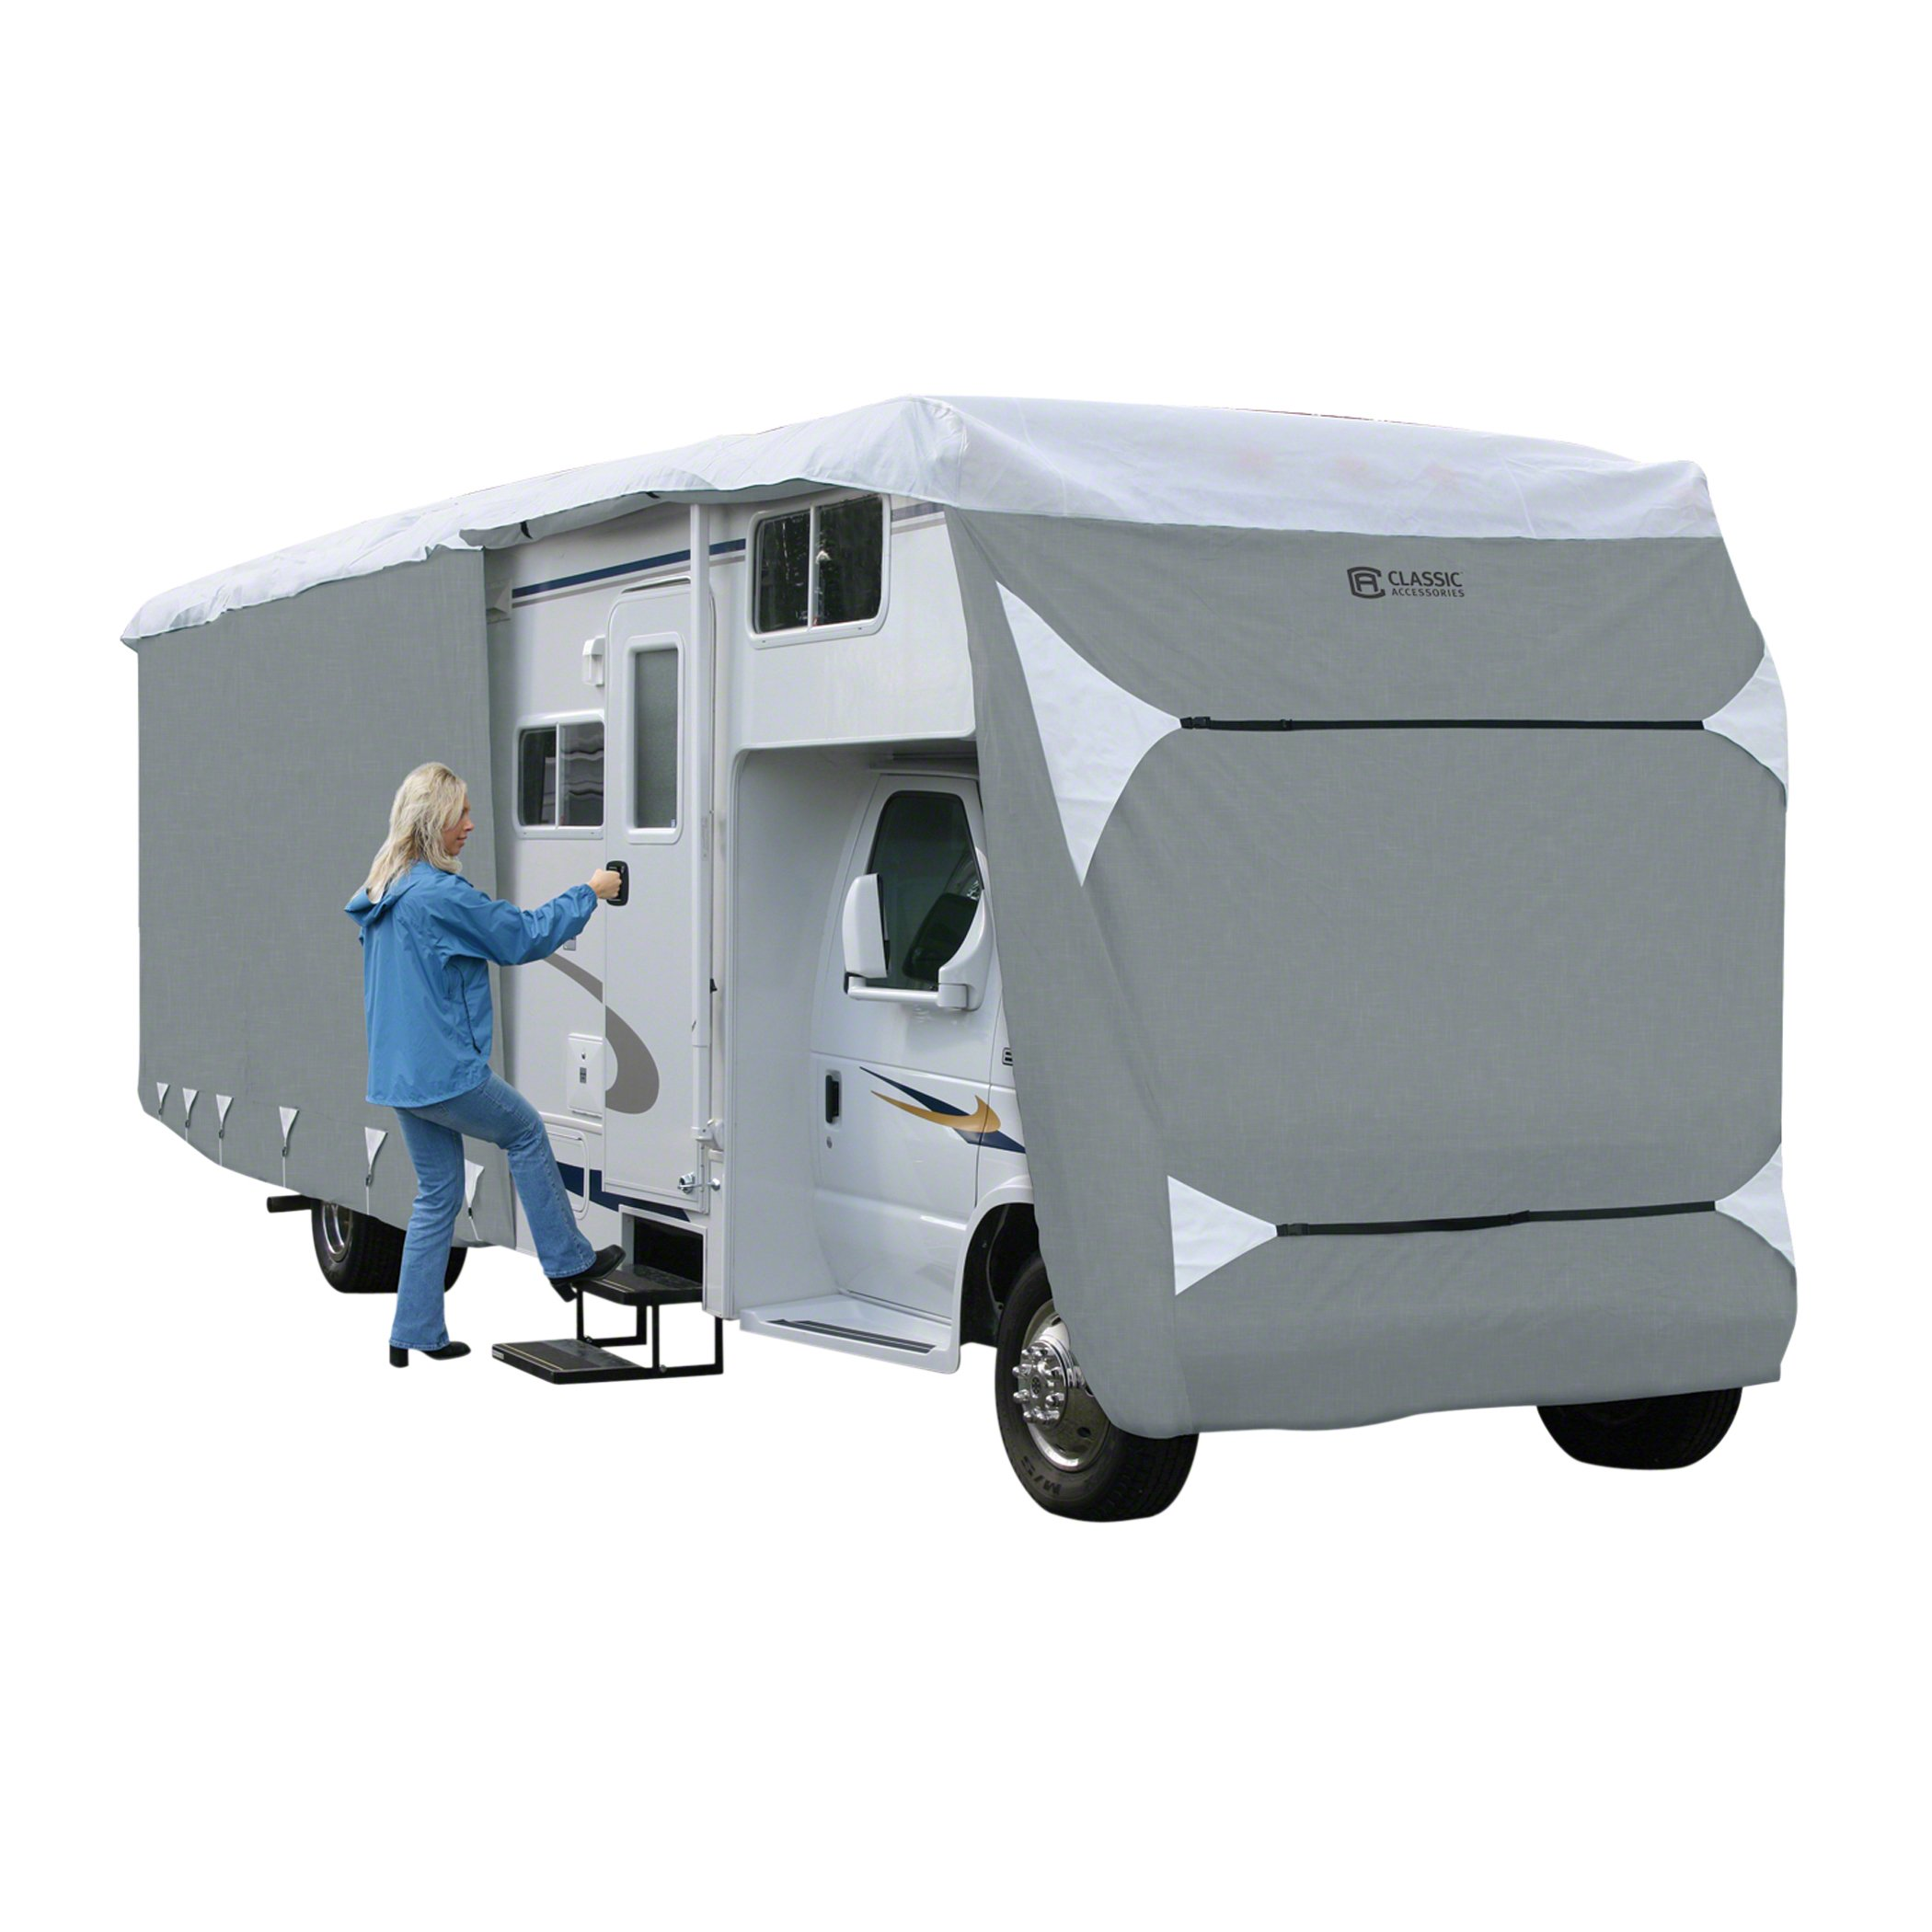 Classic Accessories OverDrive PolyPro 3 Deluxe Class C RV Cover, Fits 35' - 38' RVs by Classic Accessories